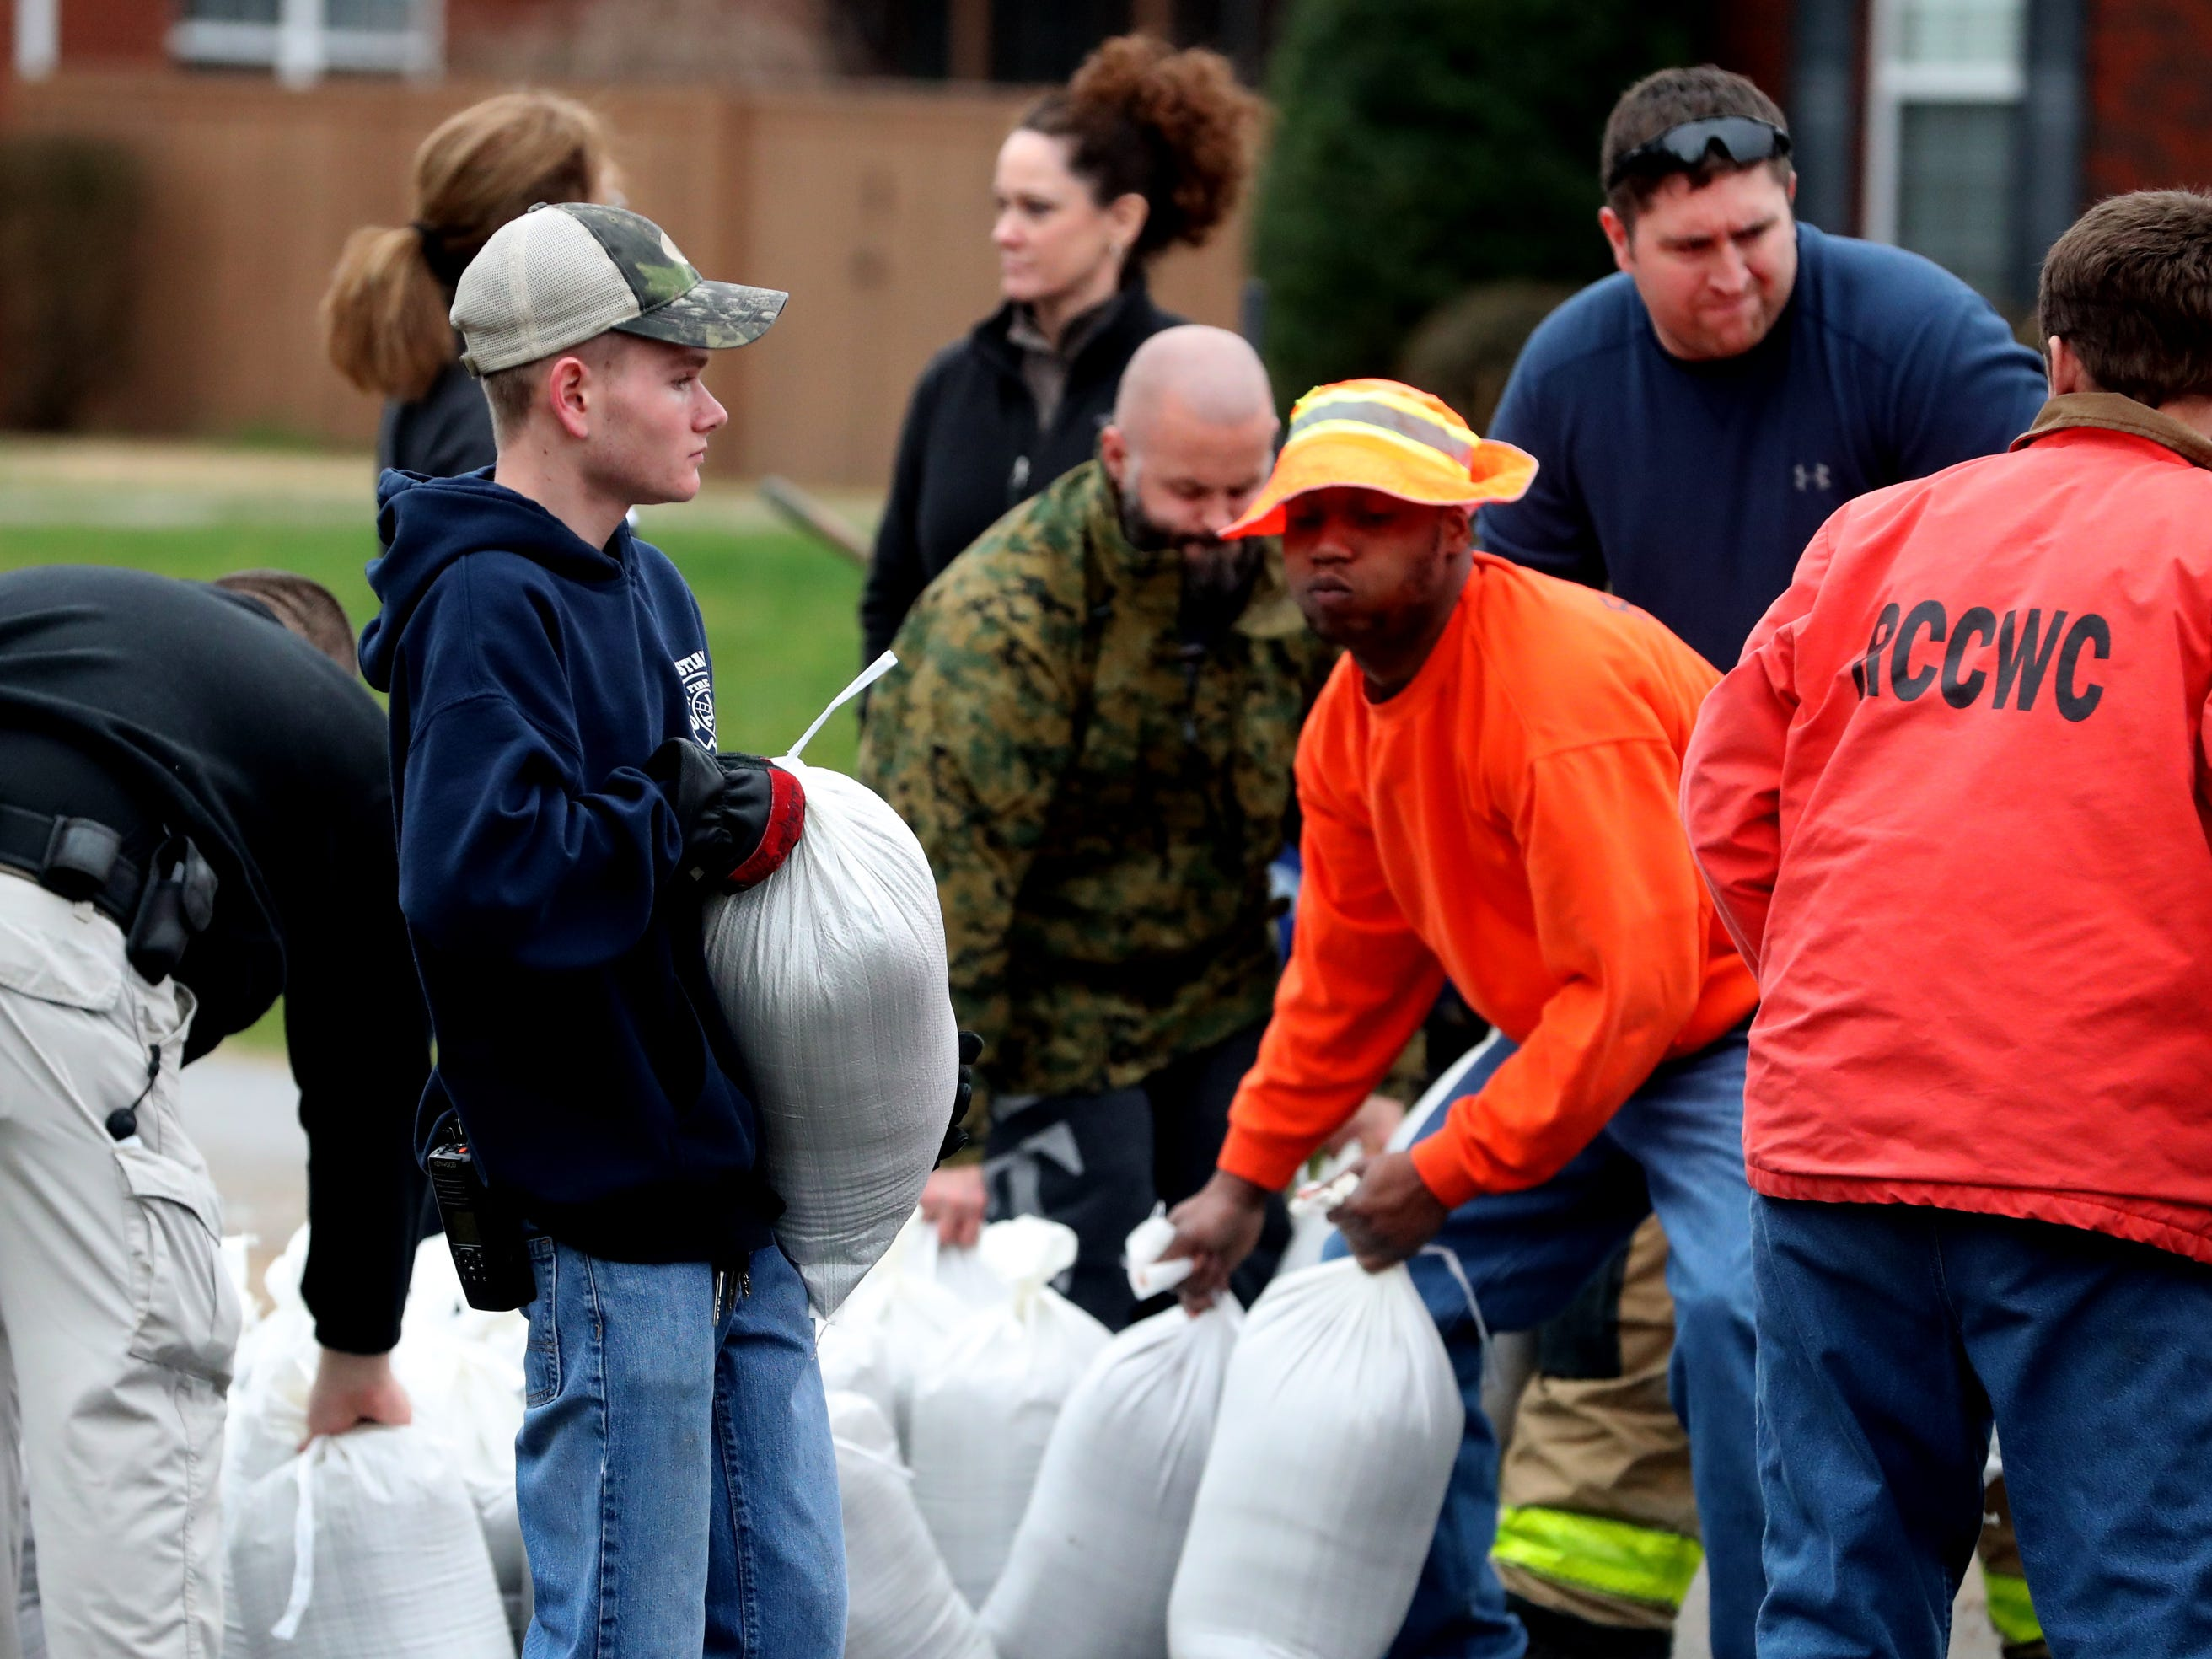 Sand bags are loaded on Steelson Way in Murfreesboro to help with the flooding efforts, on Saturday, Feb. 23, 2019.